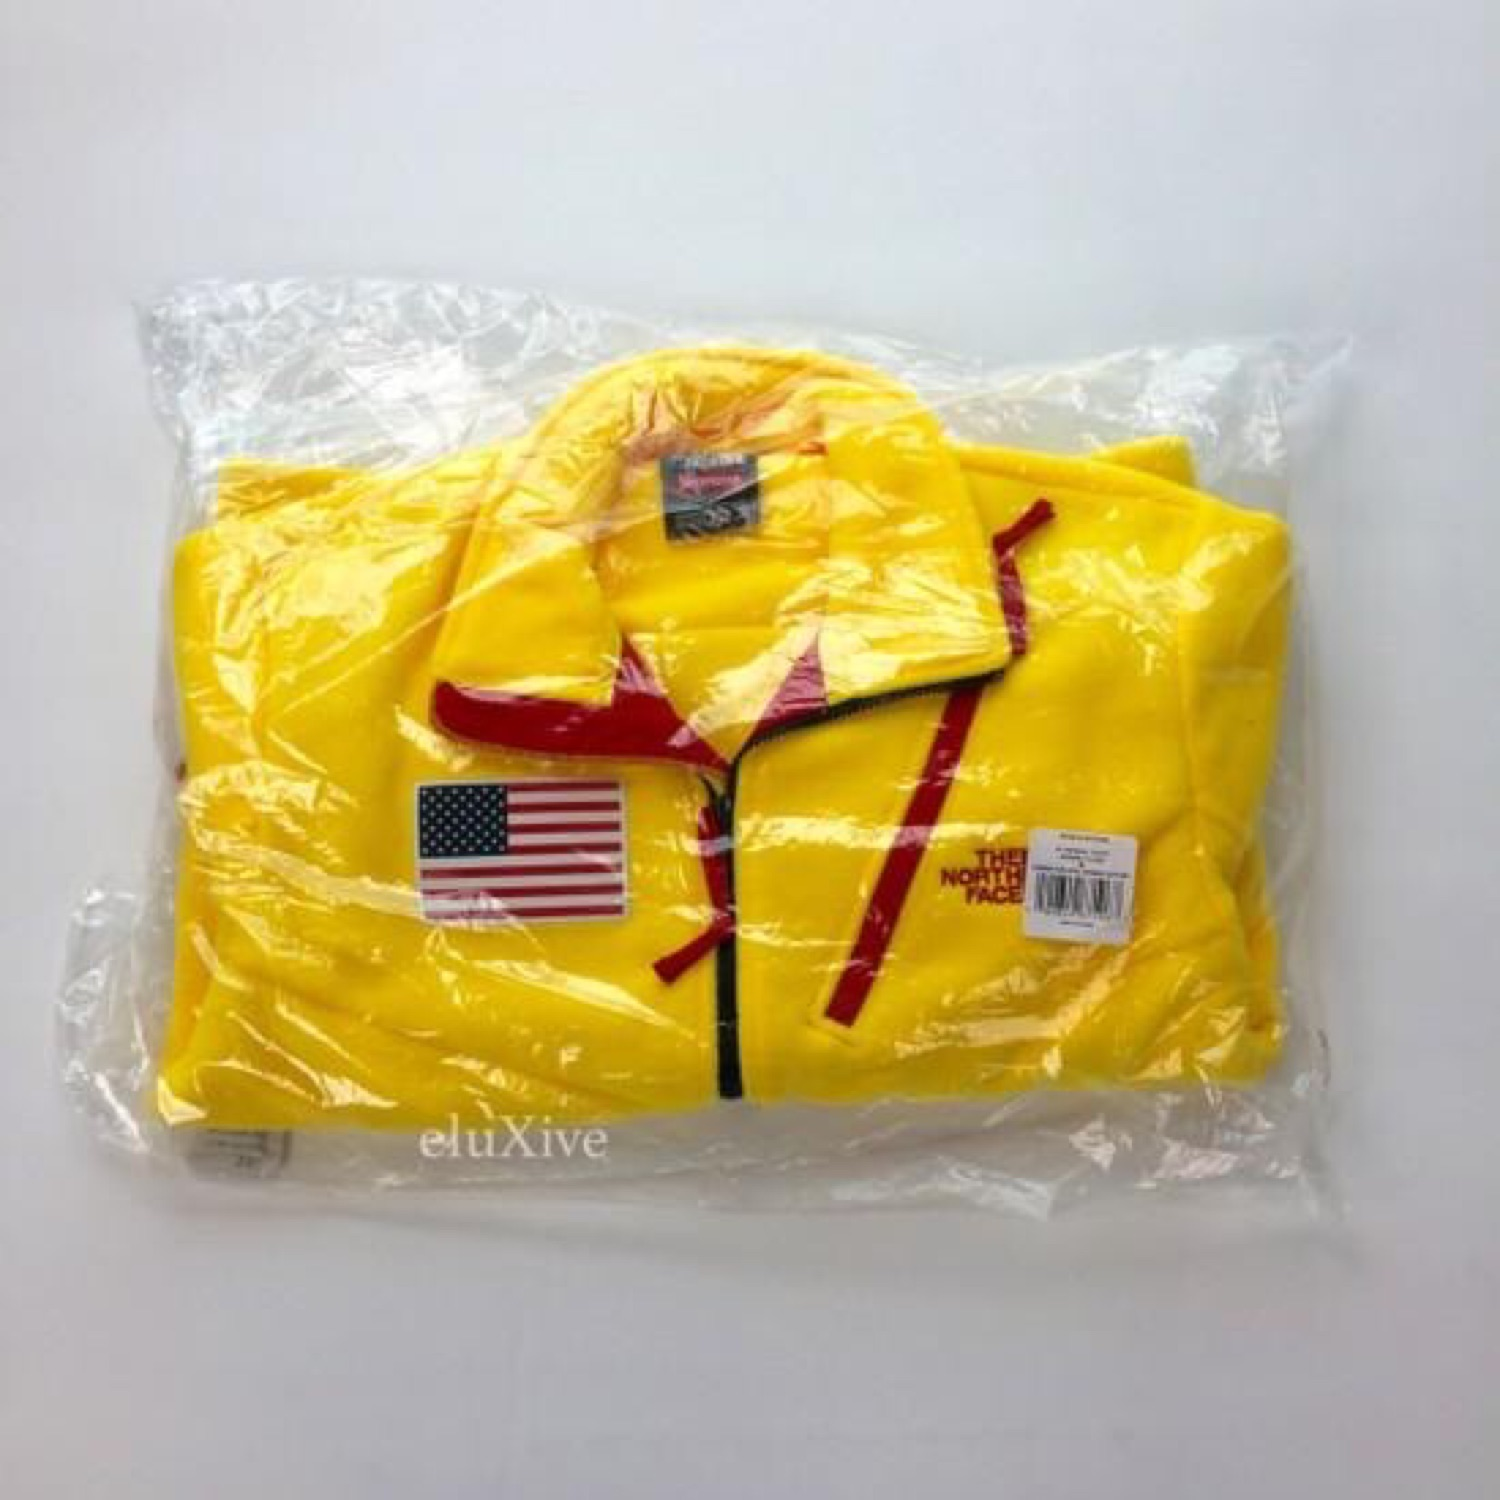 Supreme X Tnf Yellow Trans Antartica Expedition